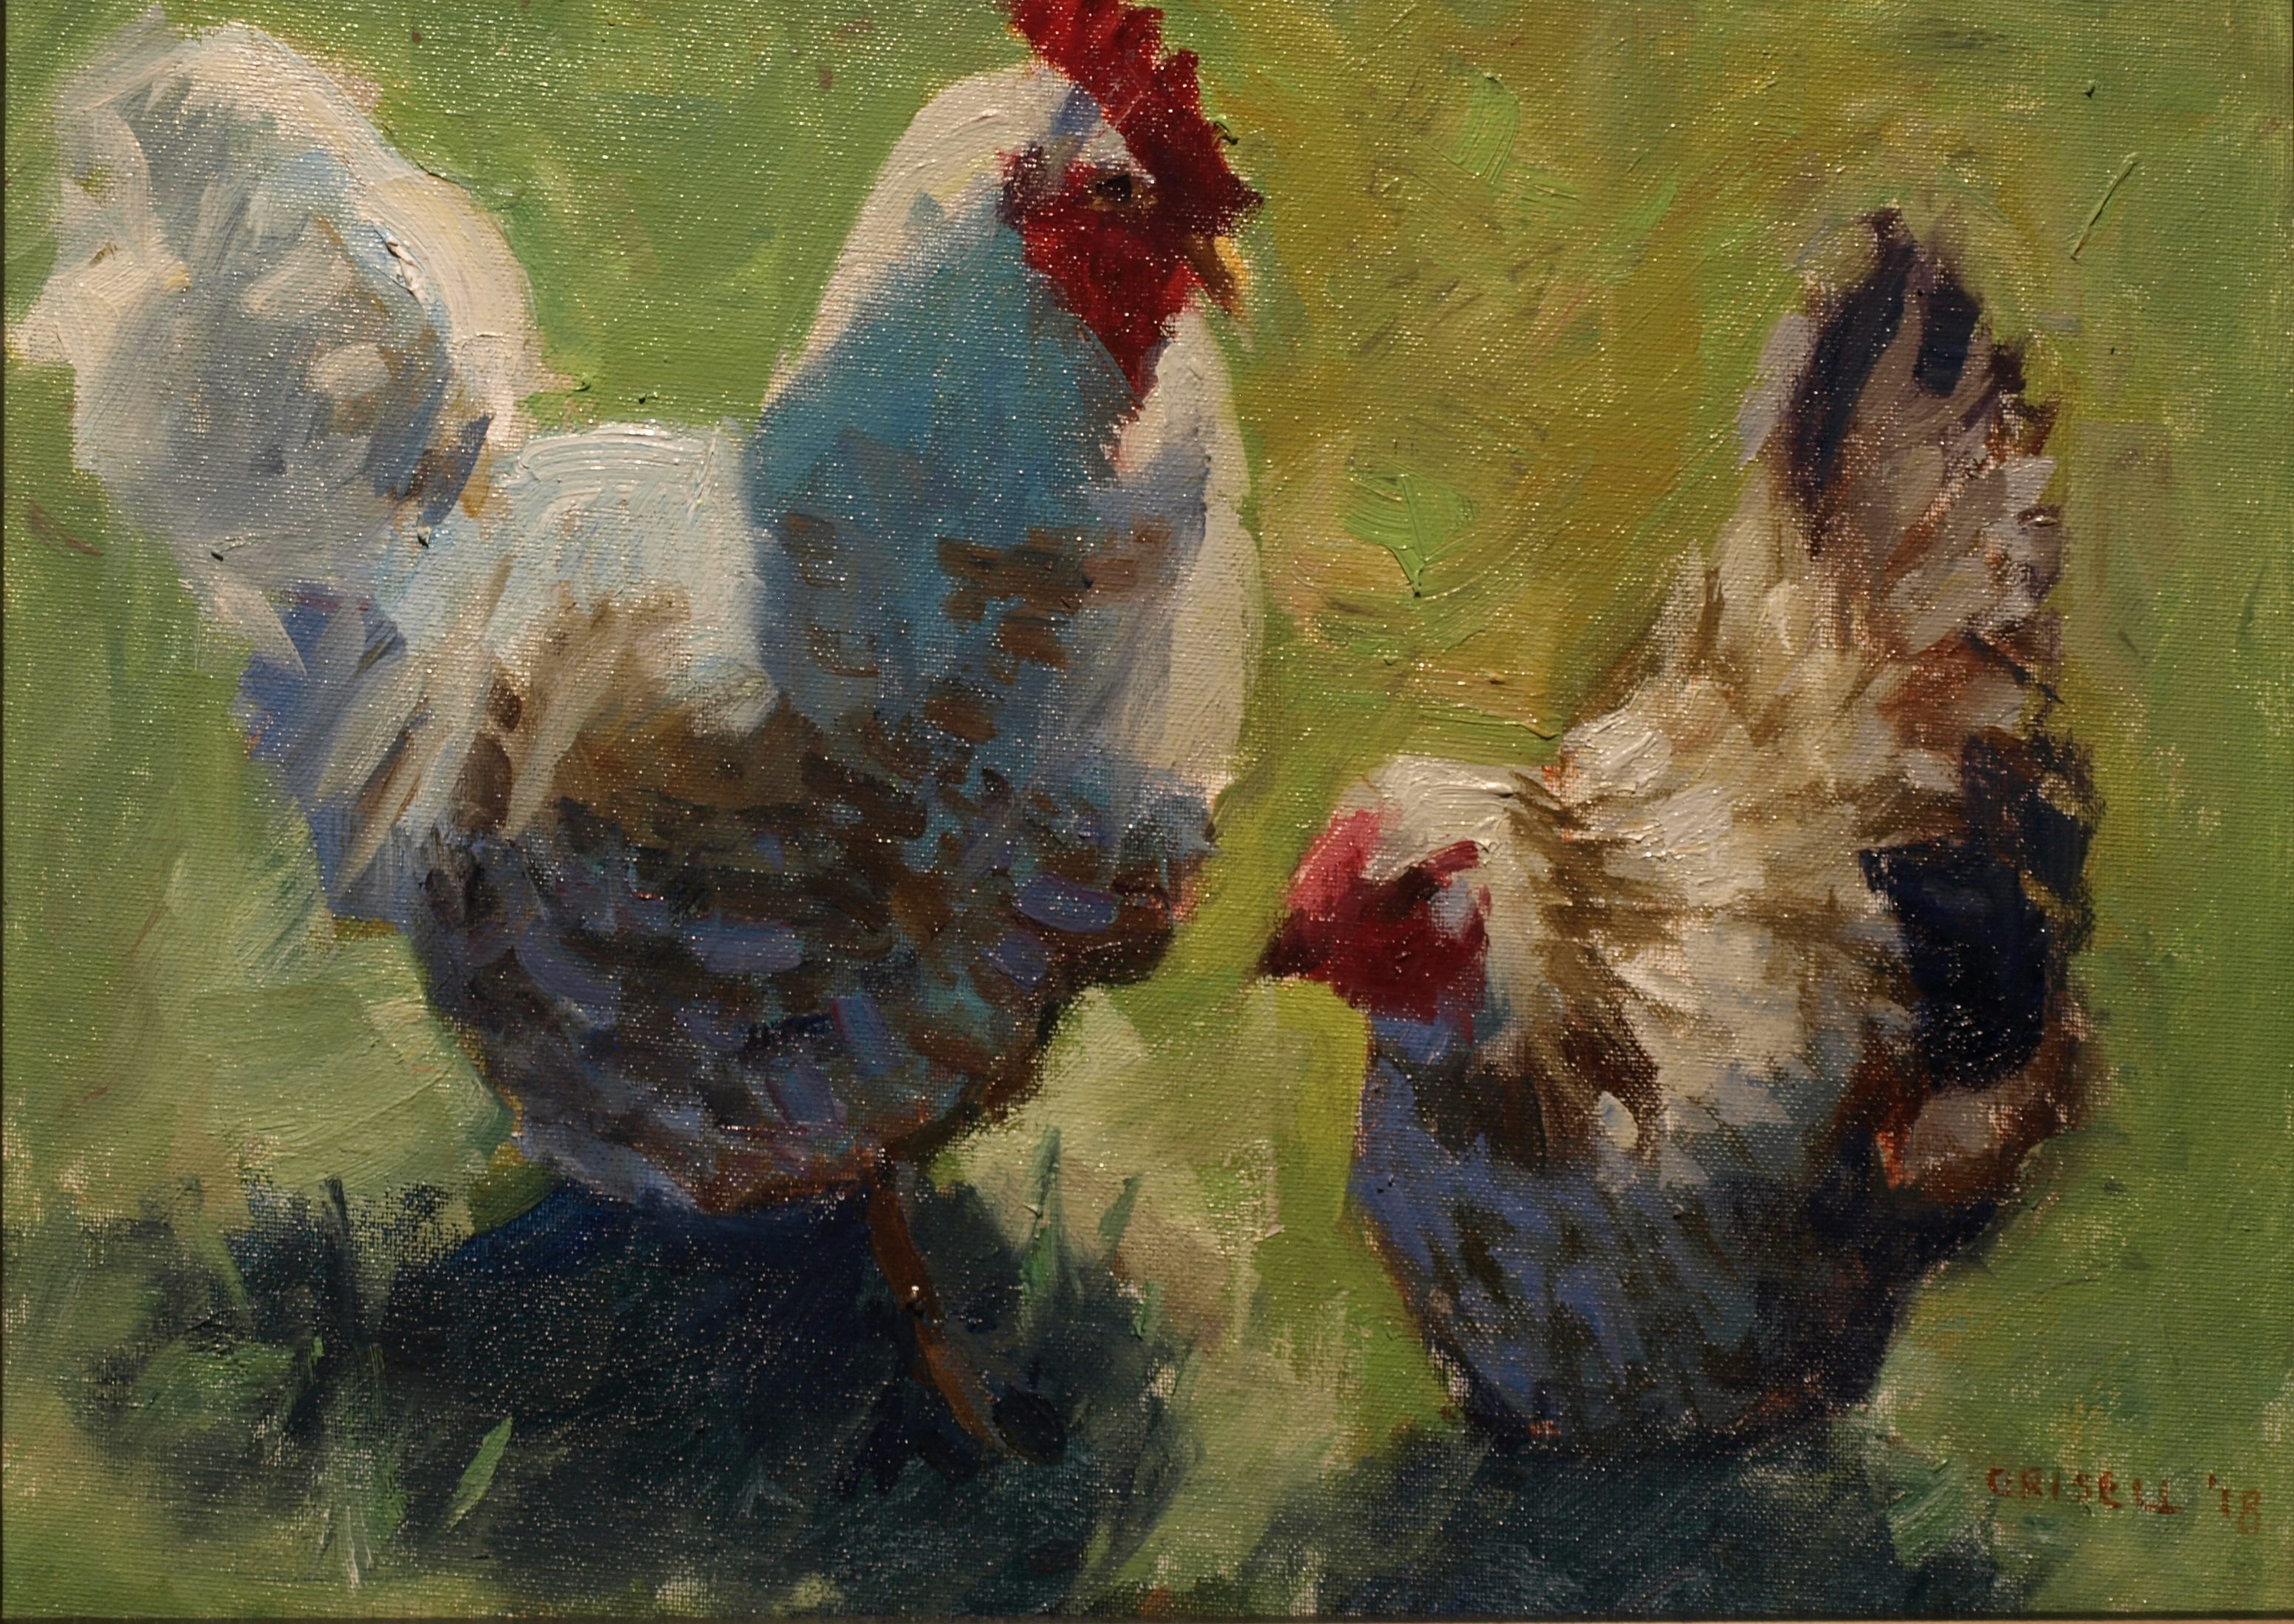 Hen and Rooster, Oil on Panel, 12 x 16 Inches, by Susan Grisell, $300